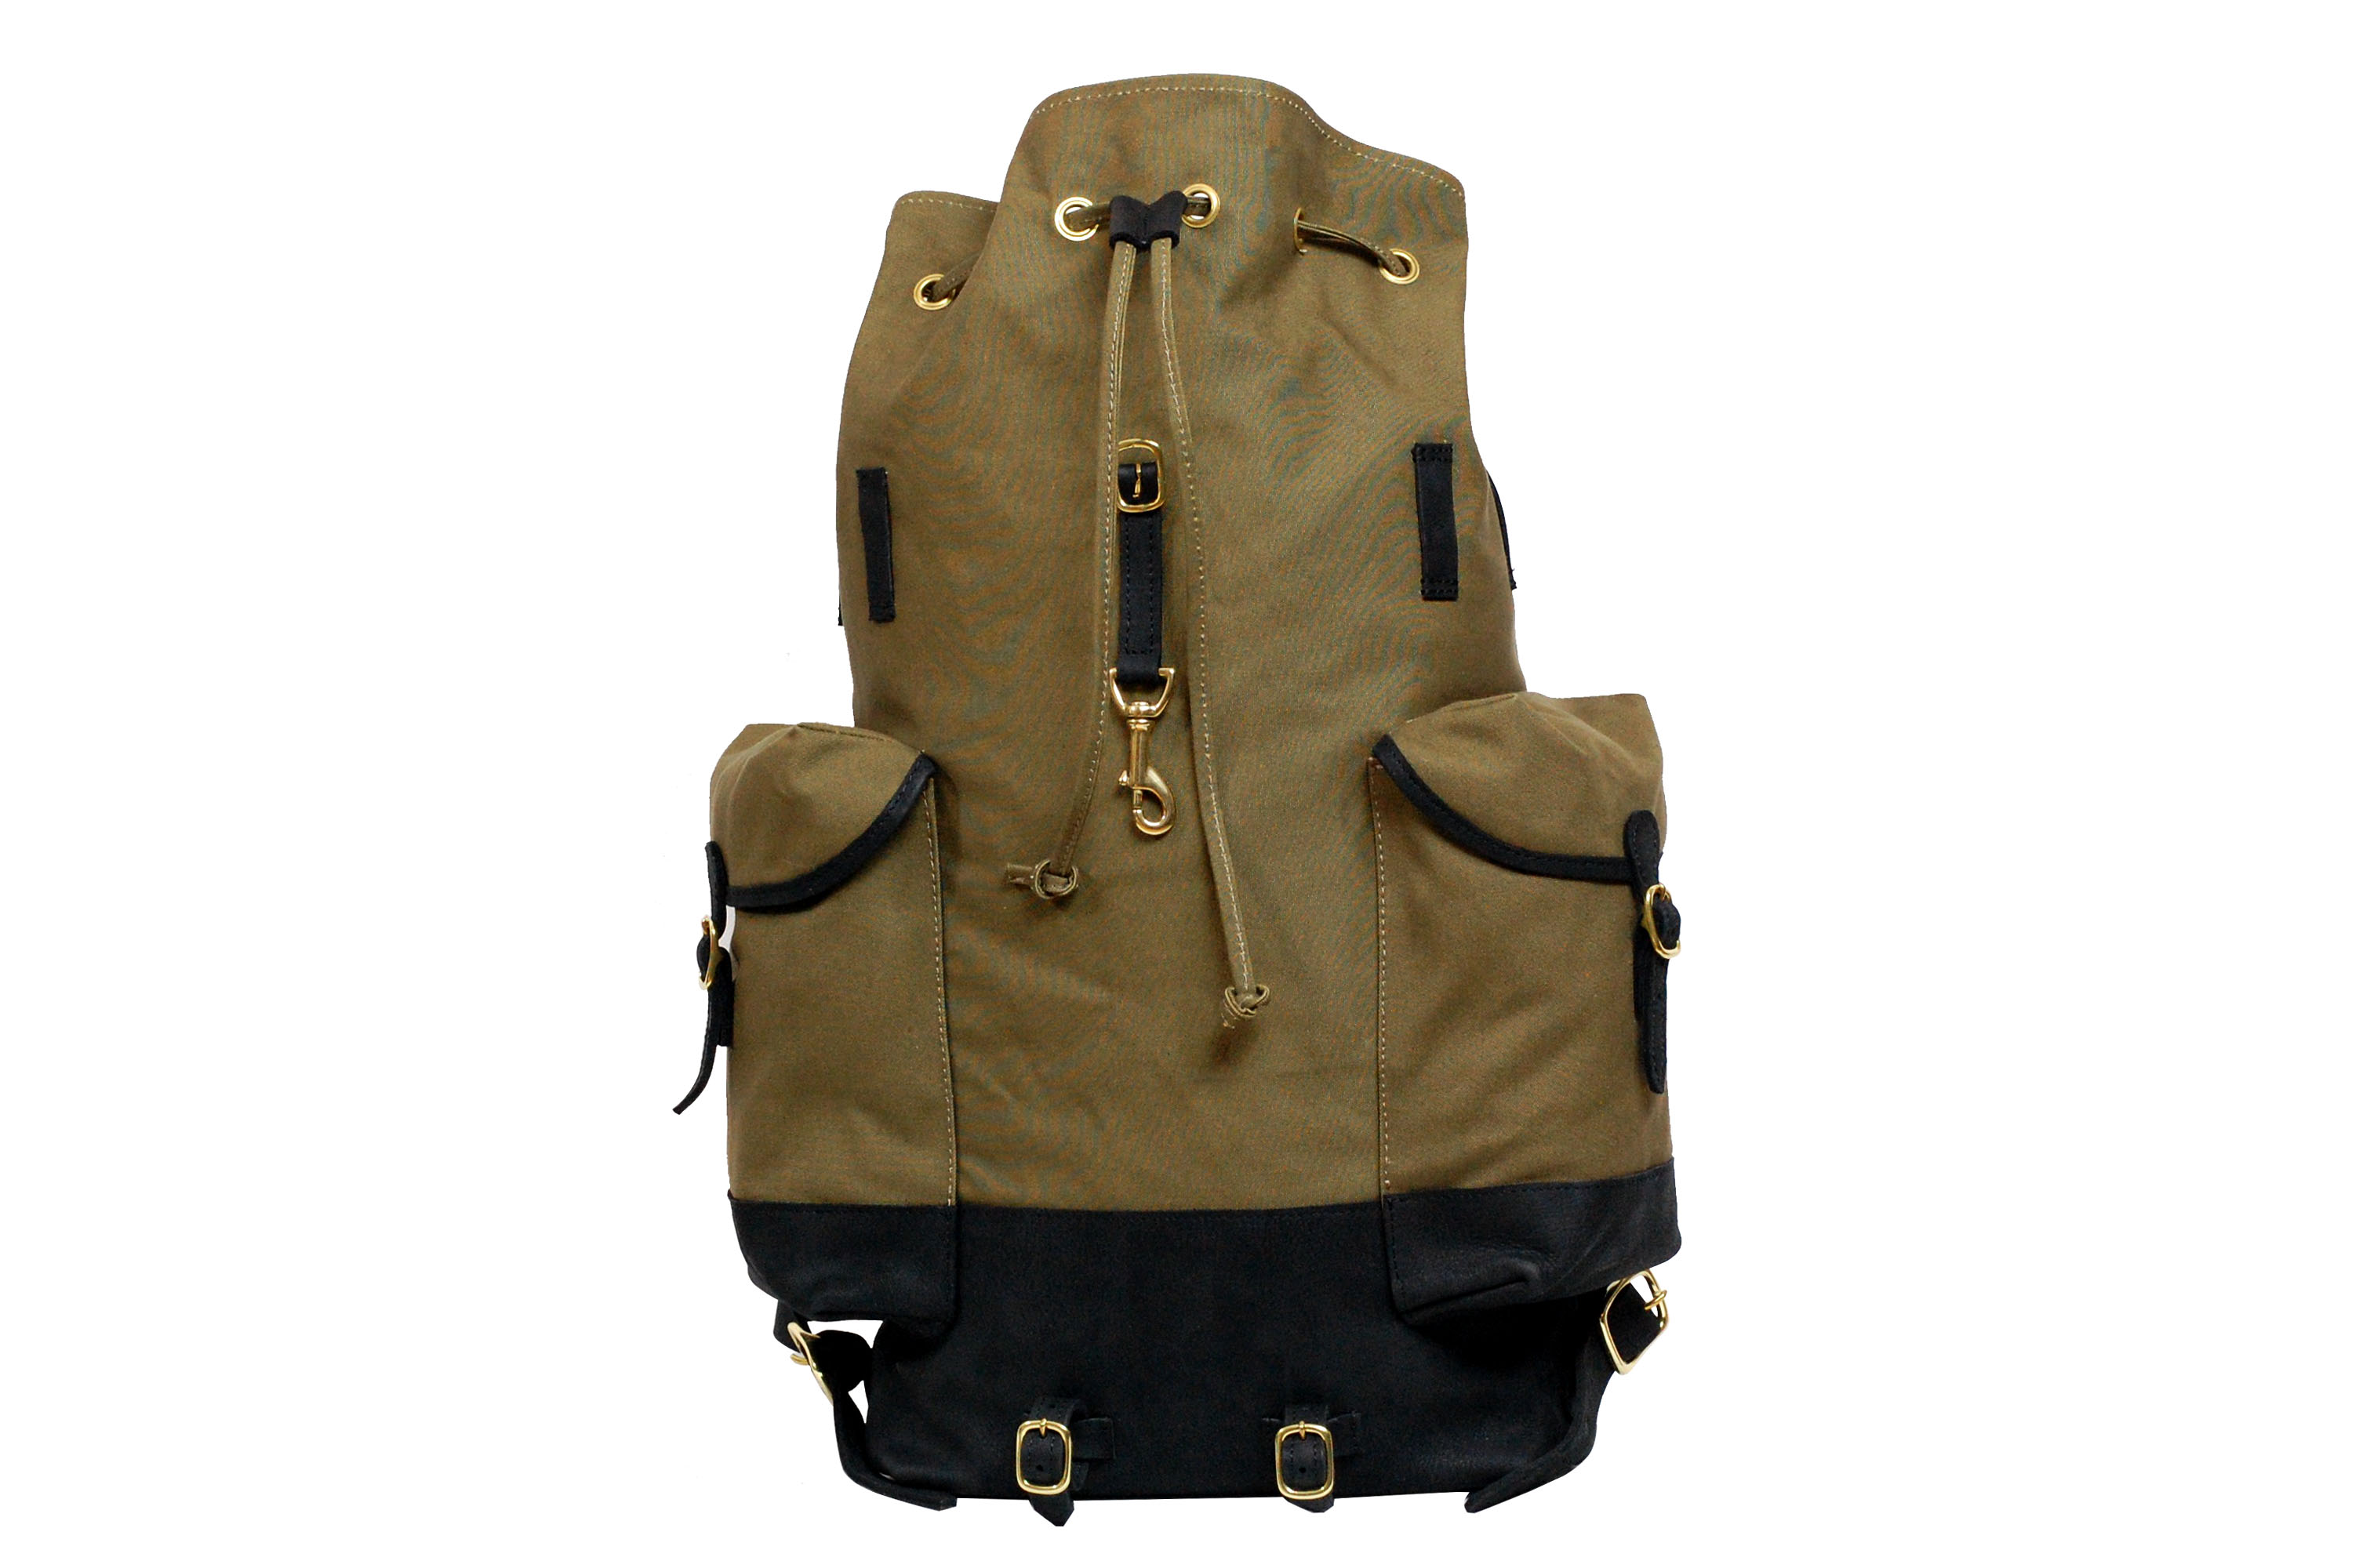 Mahiout Escape backpack in canvas and leather, luxury designer bag